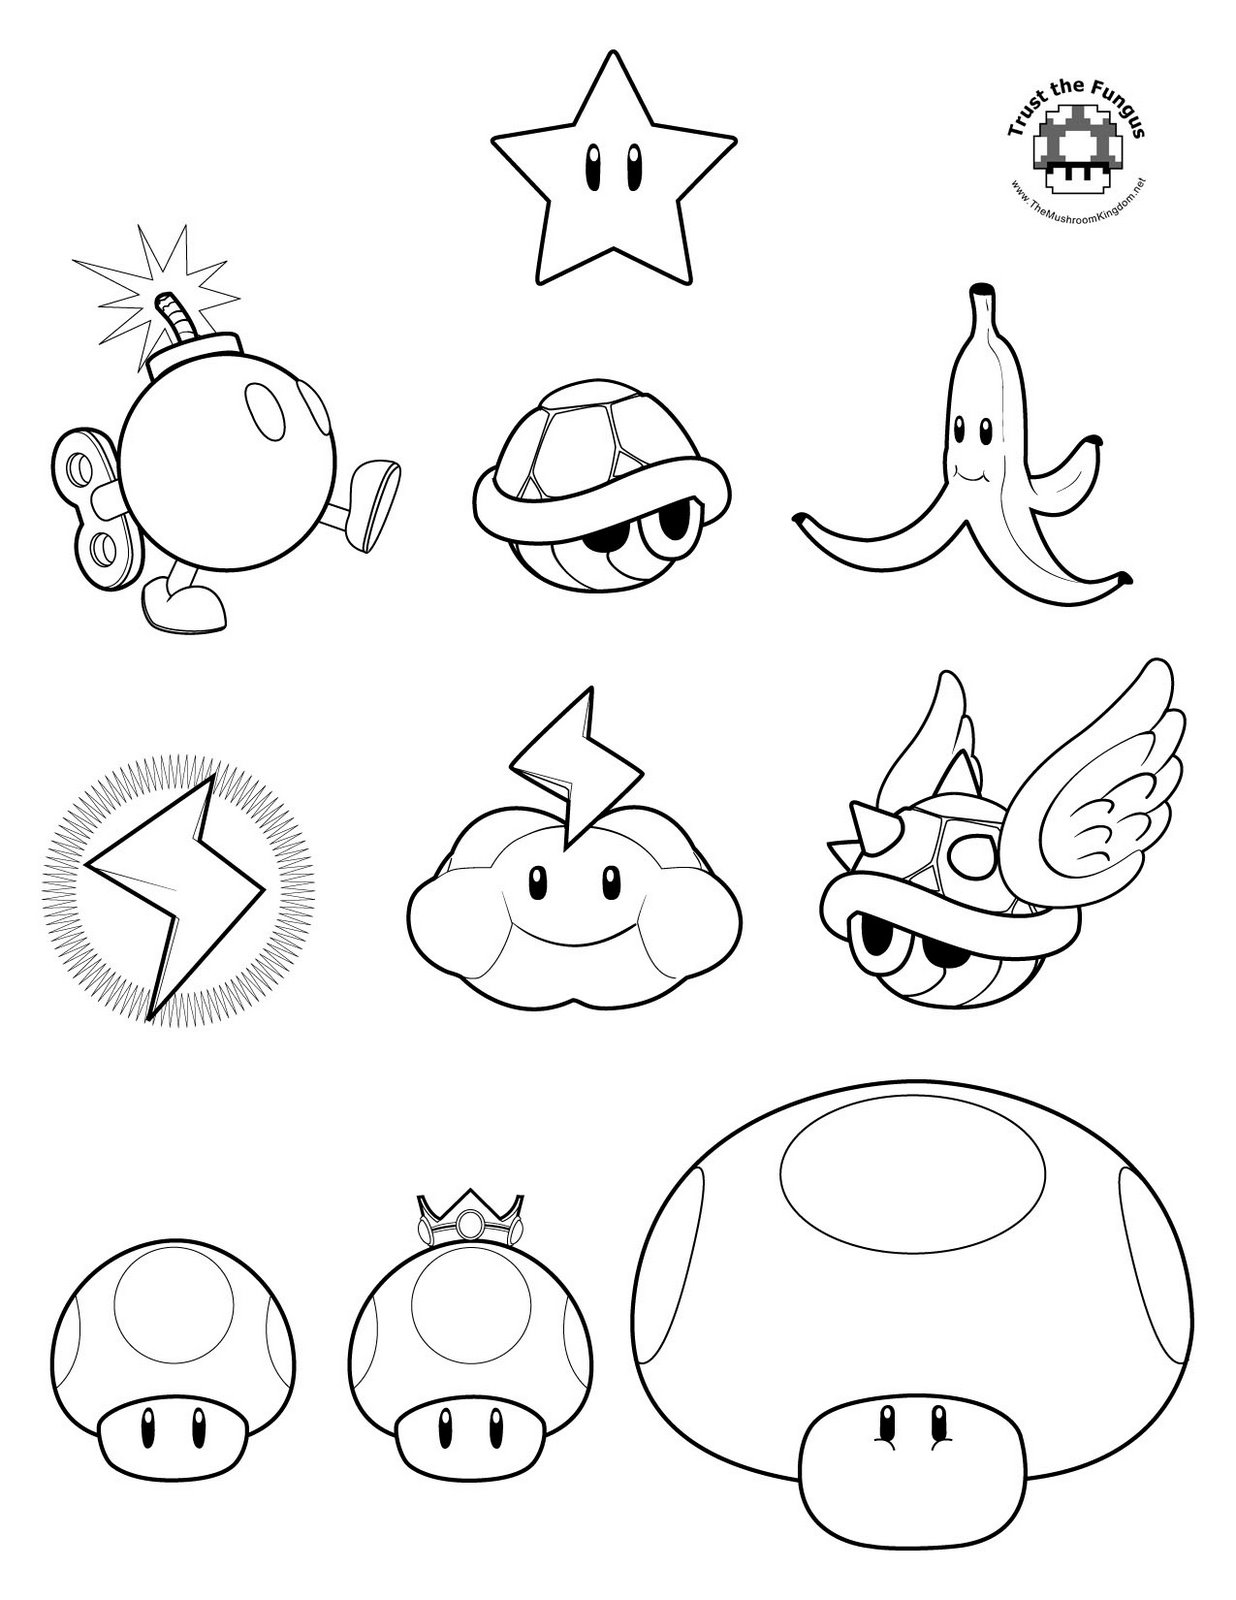 Free coloring pages of mario power-ups